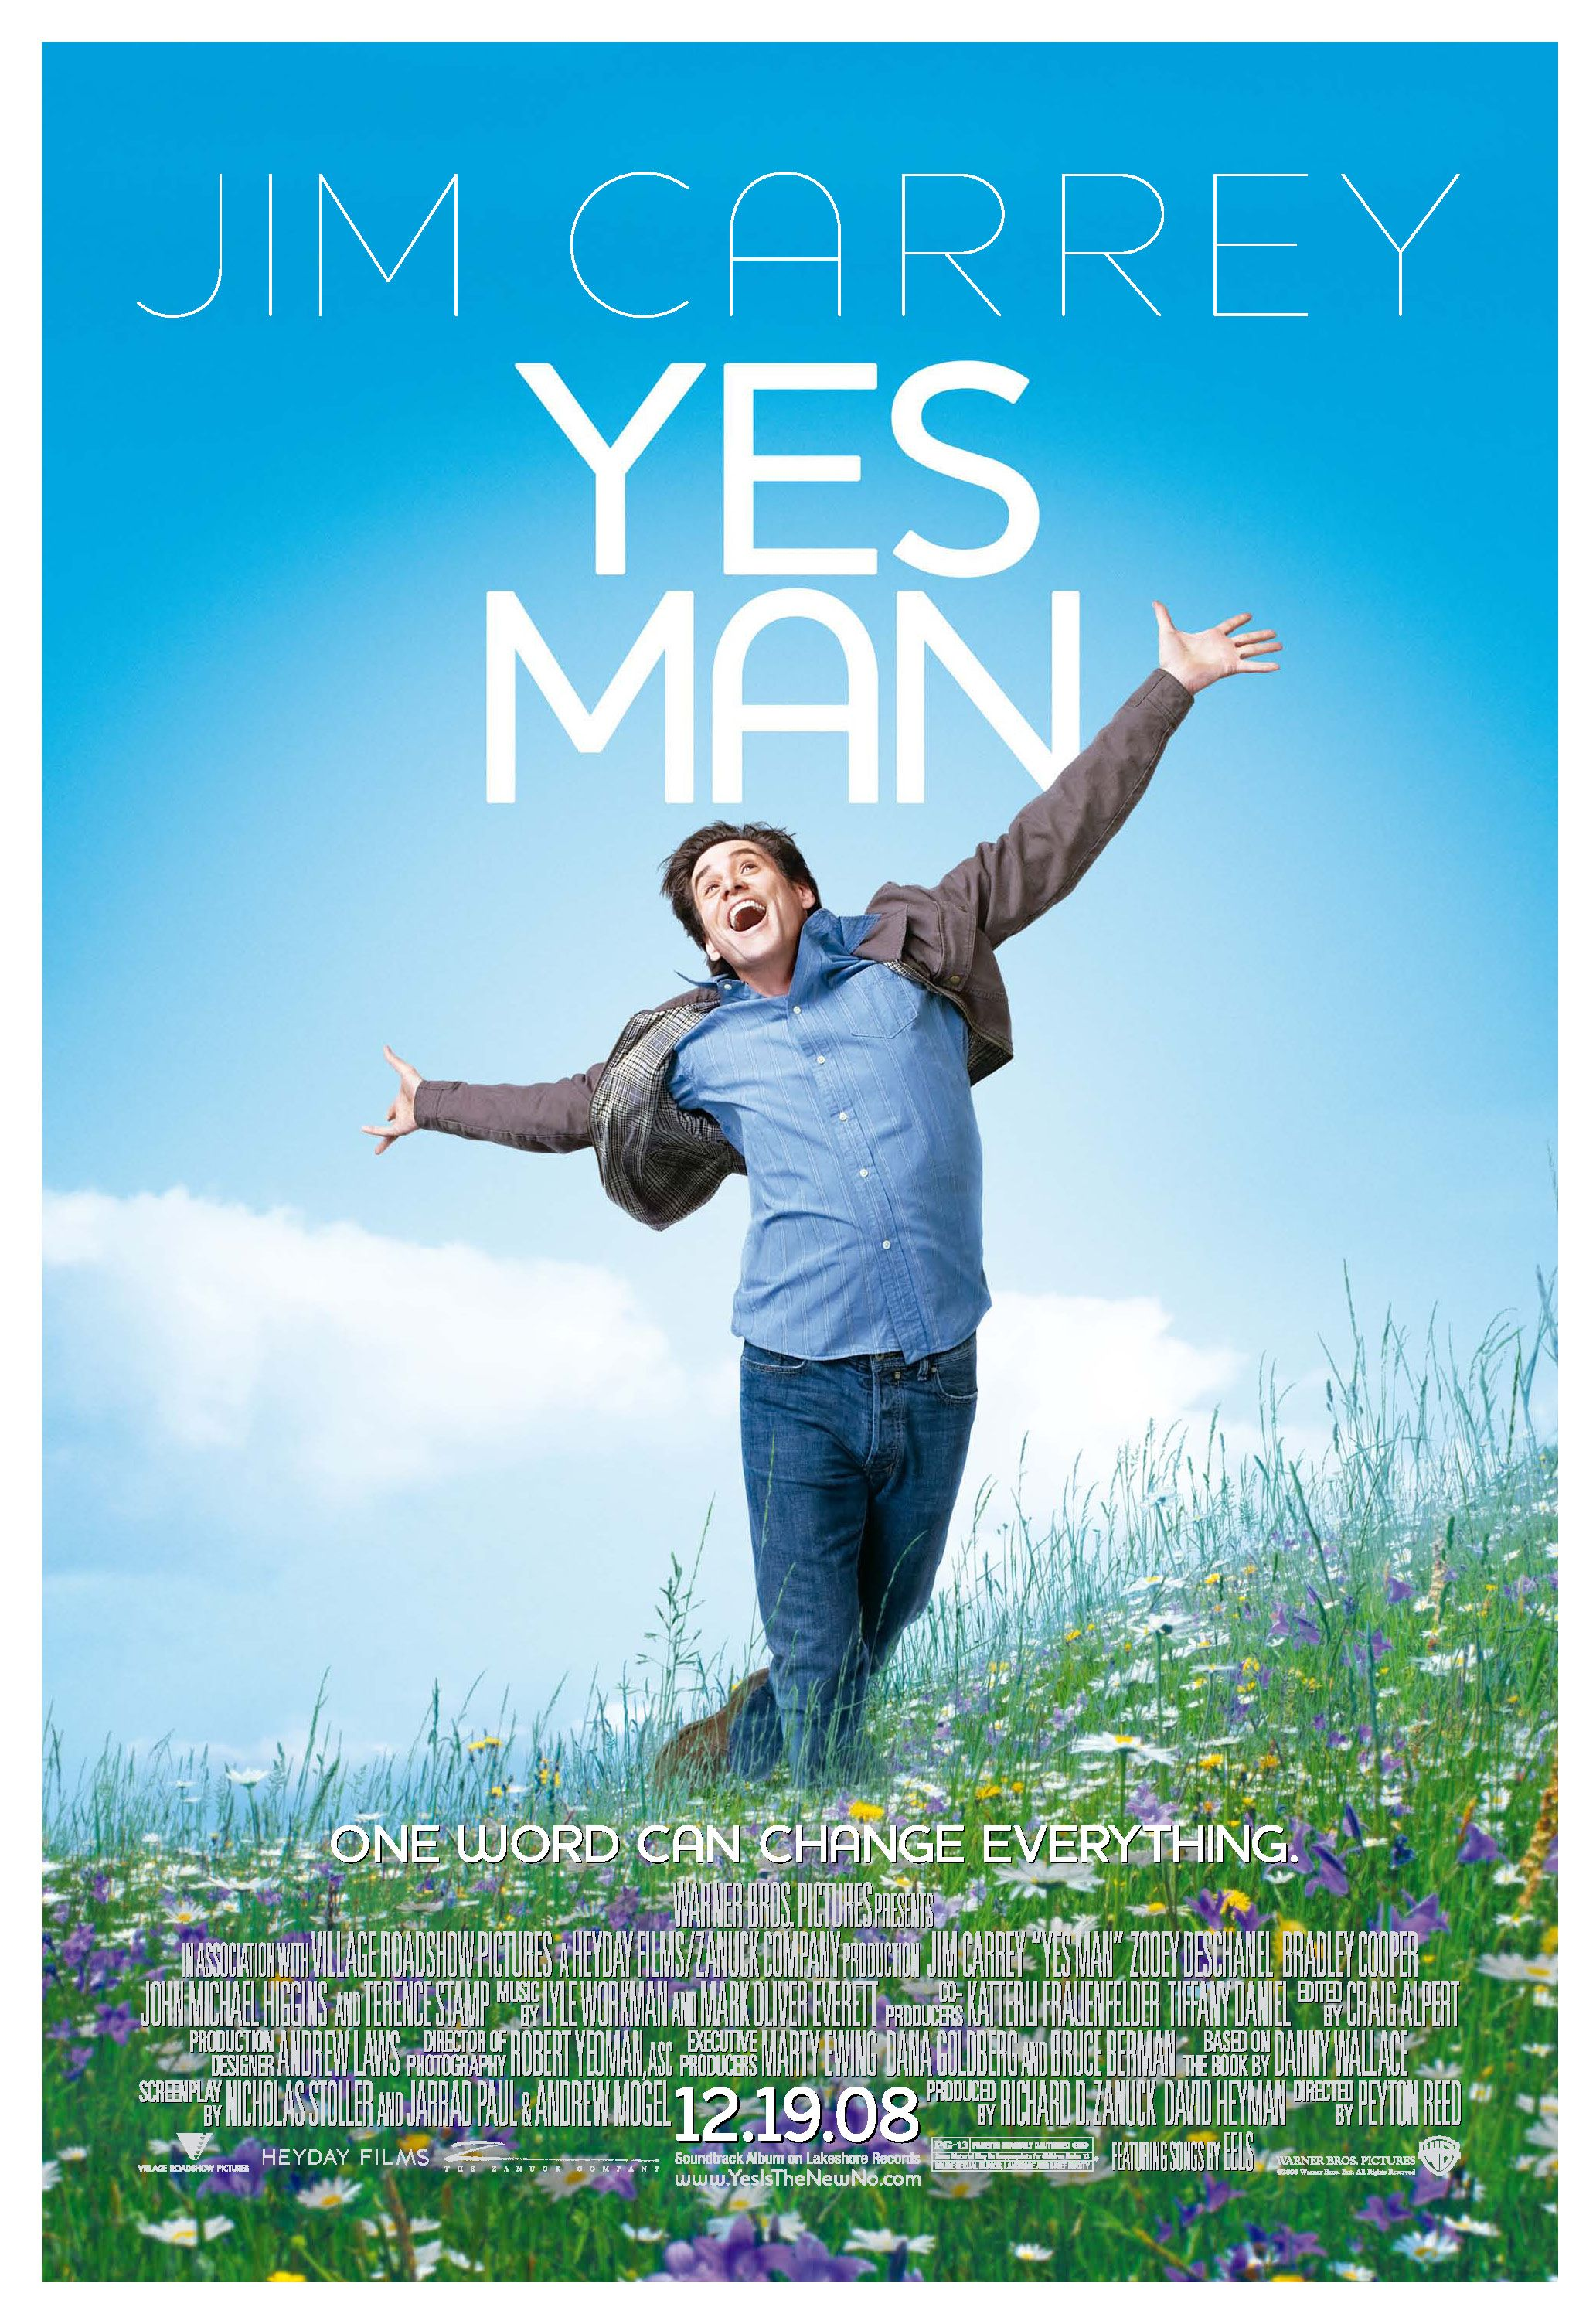 Just say yes. Comedy movies posters, Yes man